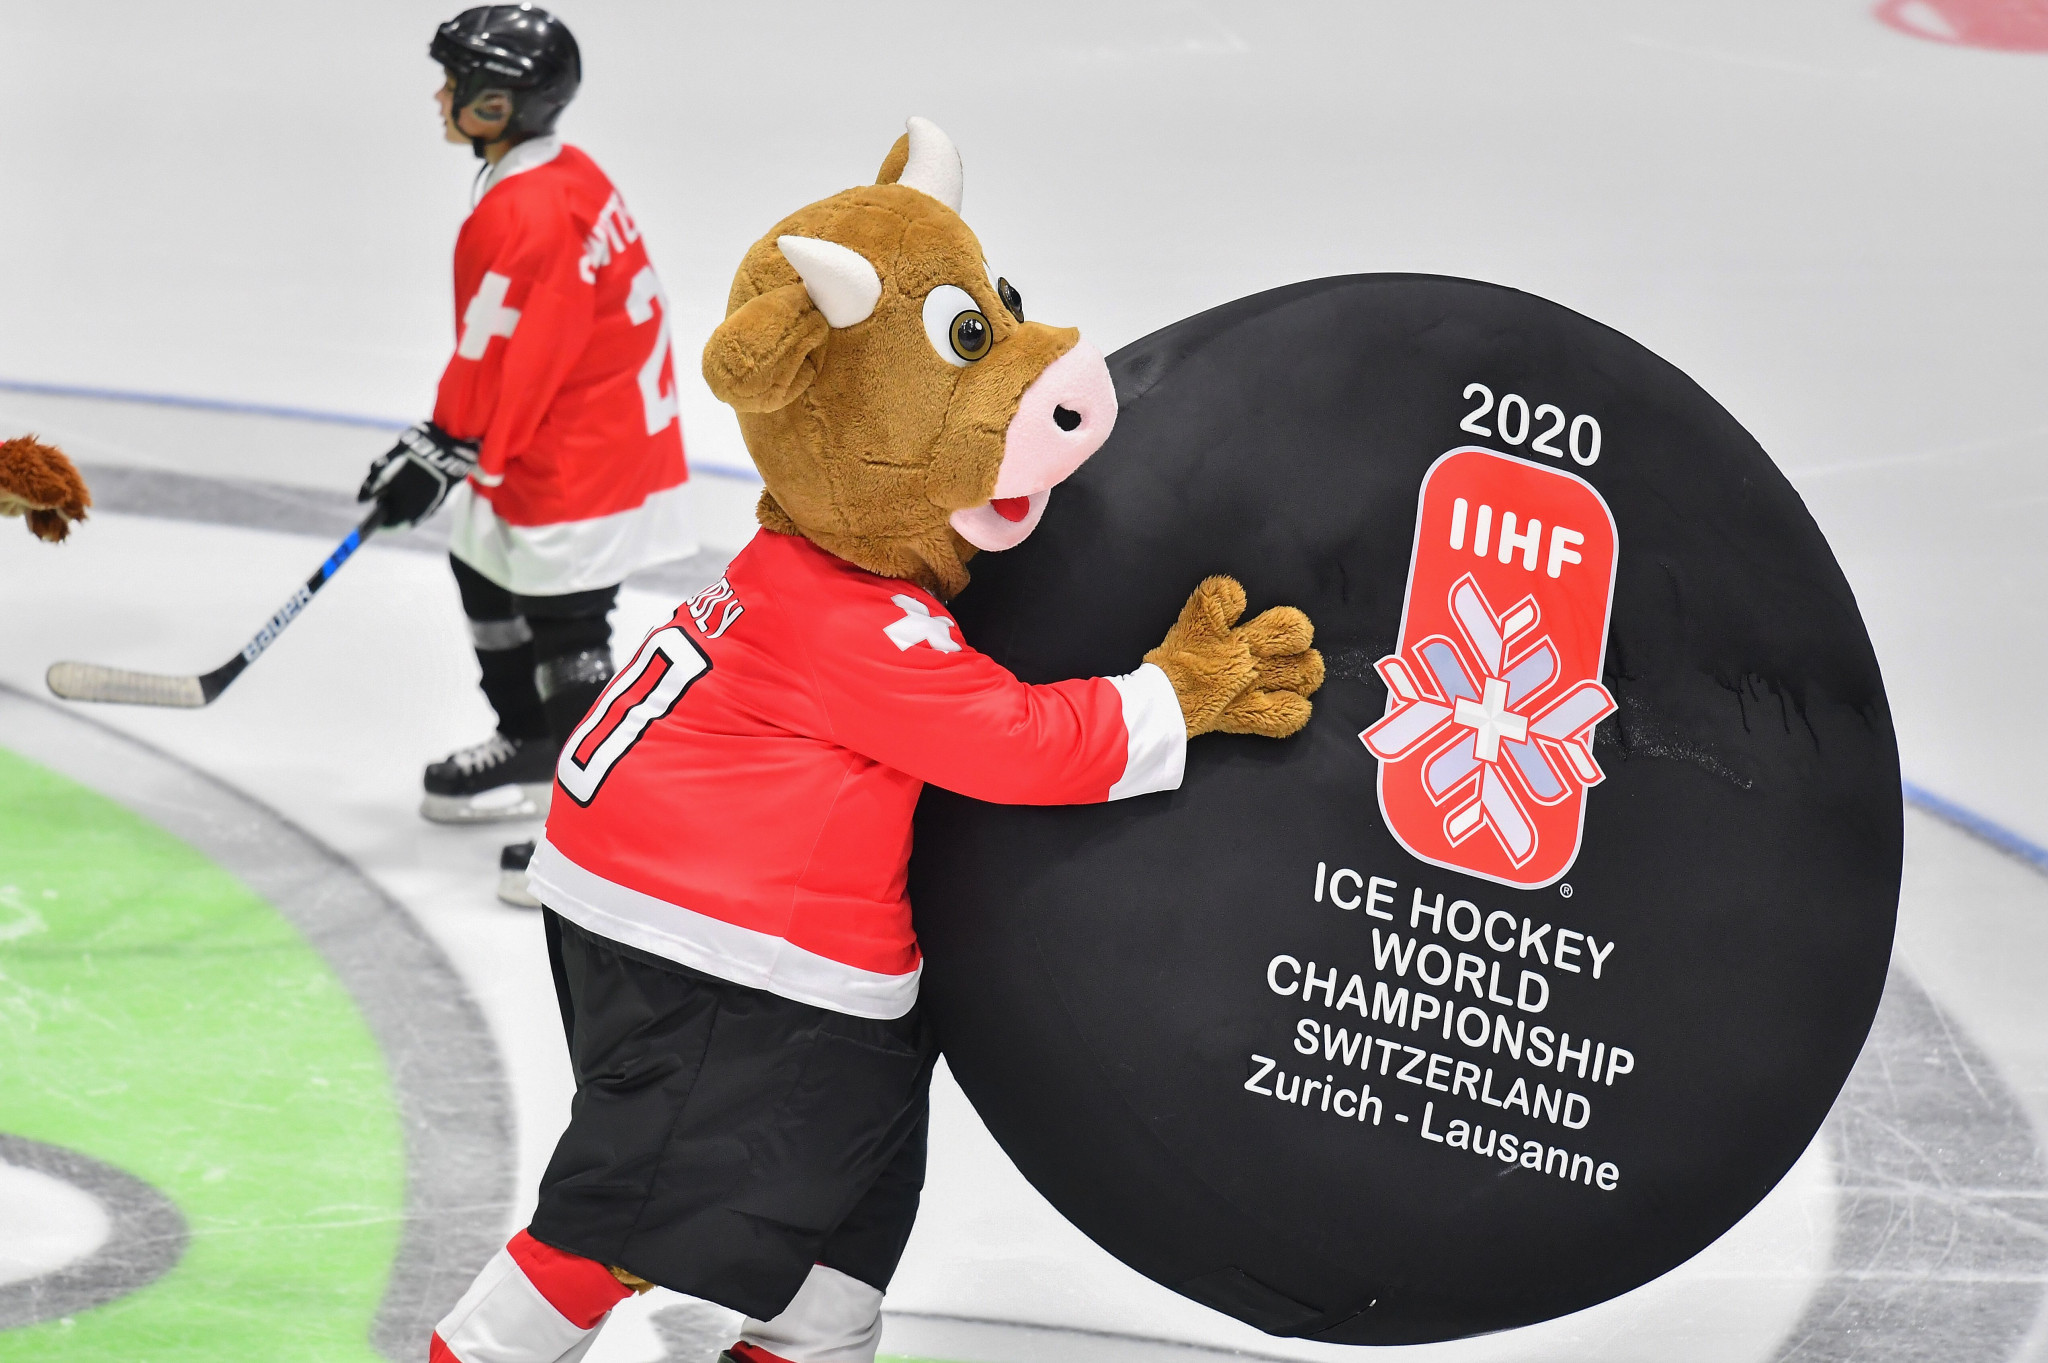 Ticket sales for 2020 IIHF World Championship poised to begin